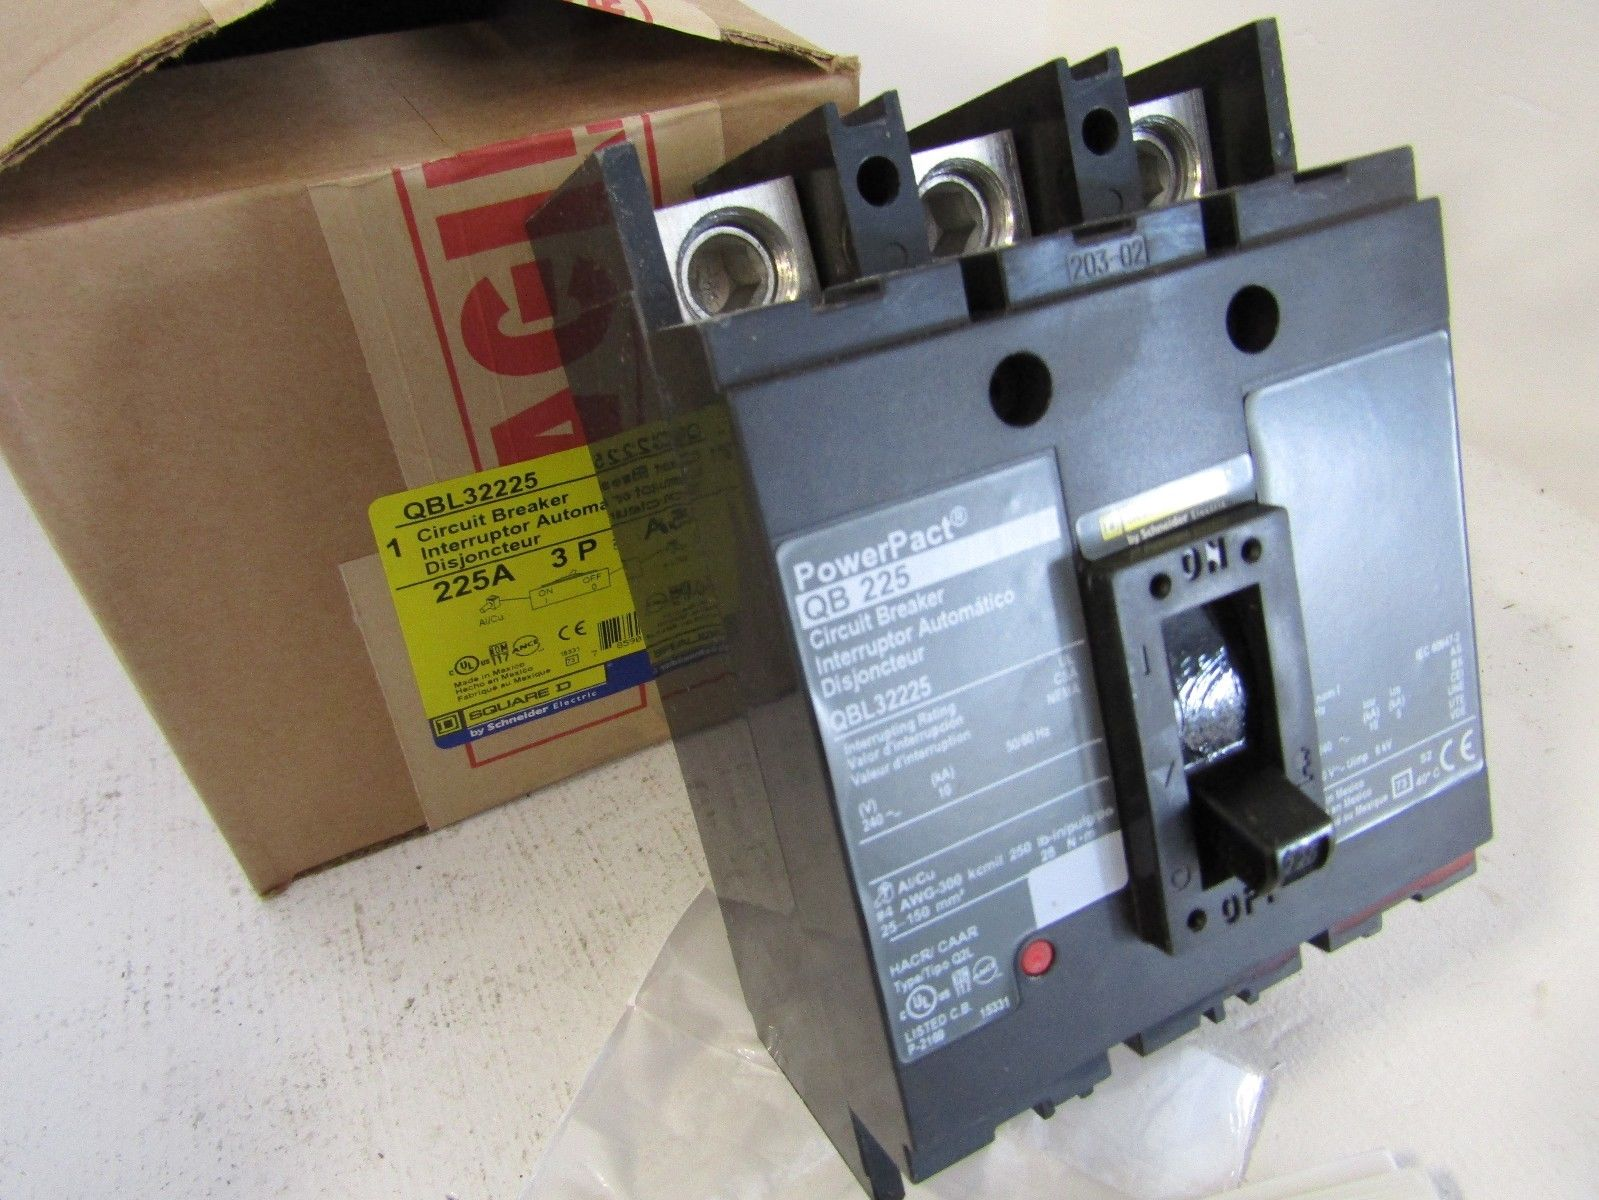 New Square D Qbl32225 3 Pole 225 Amp 240 Volt Powerpact Circuit Phase Schneider Contactor Wiring Breaker